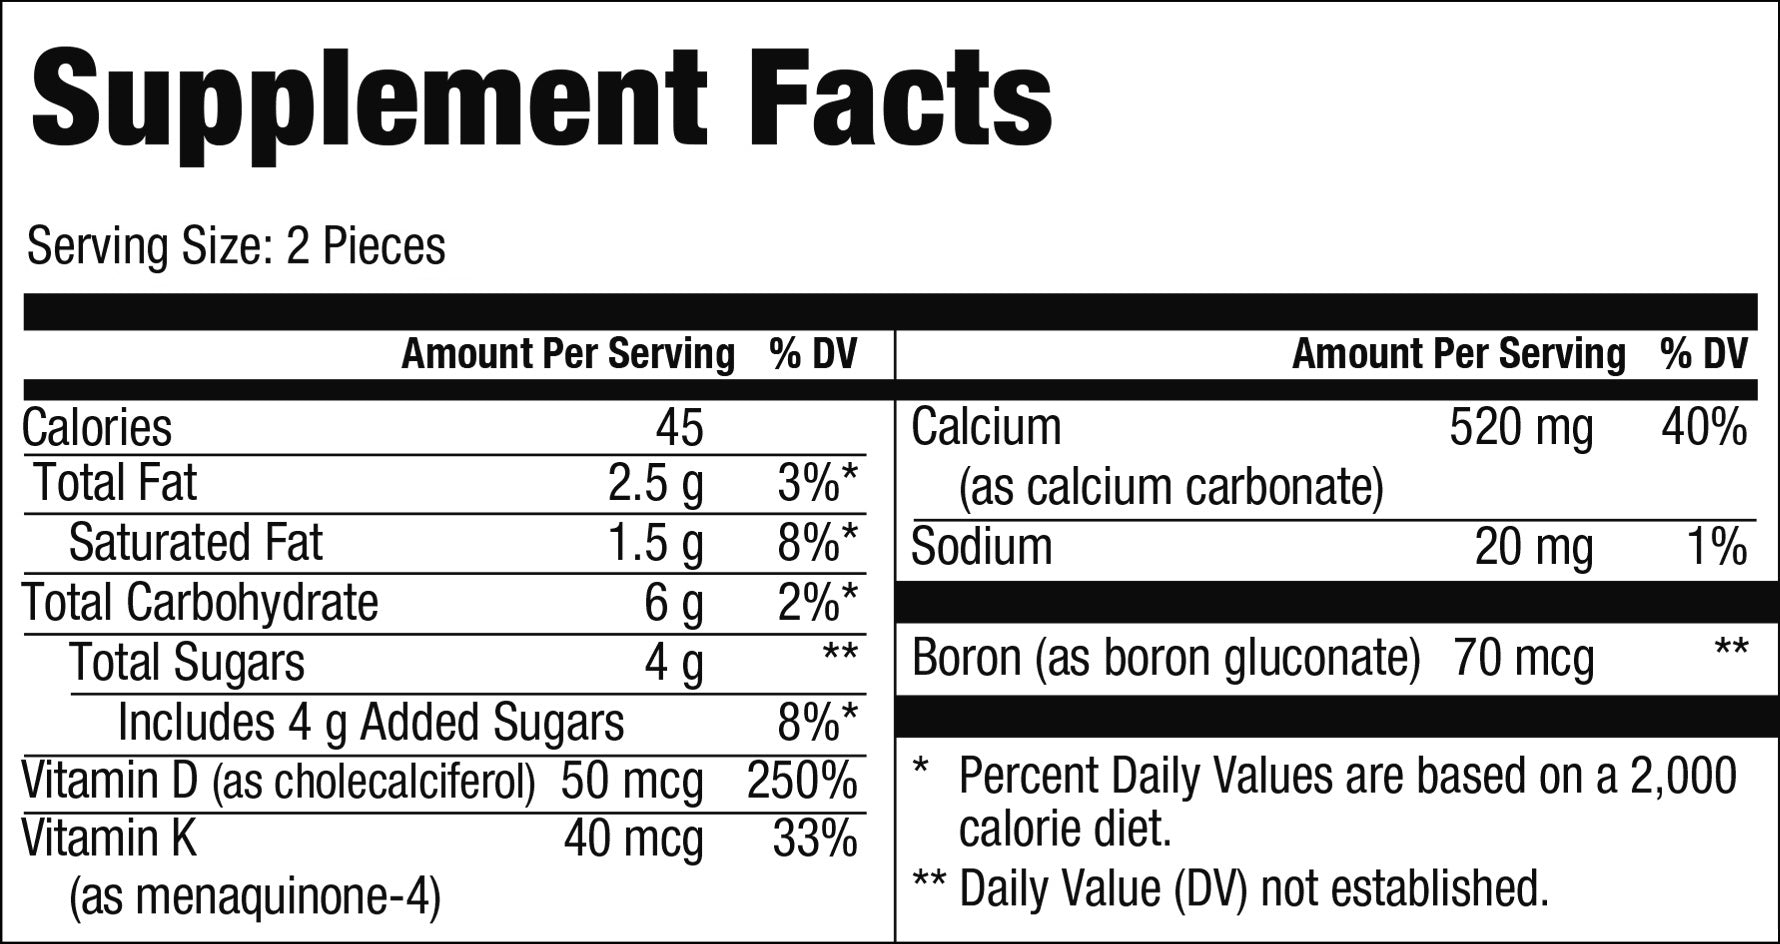 Calcium Supplement Facts